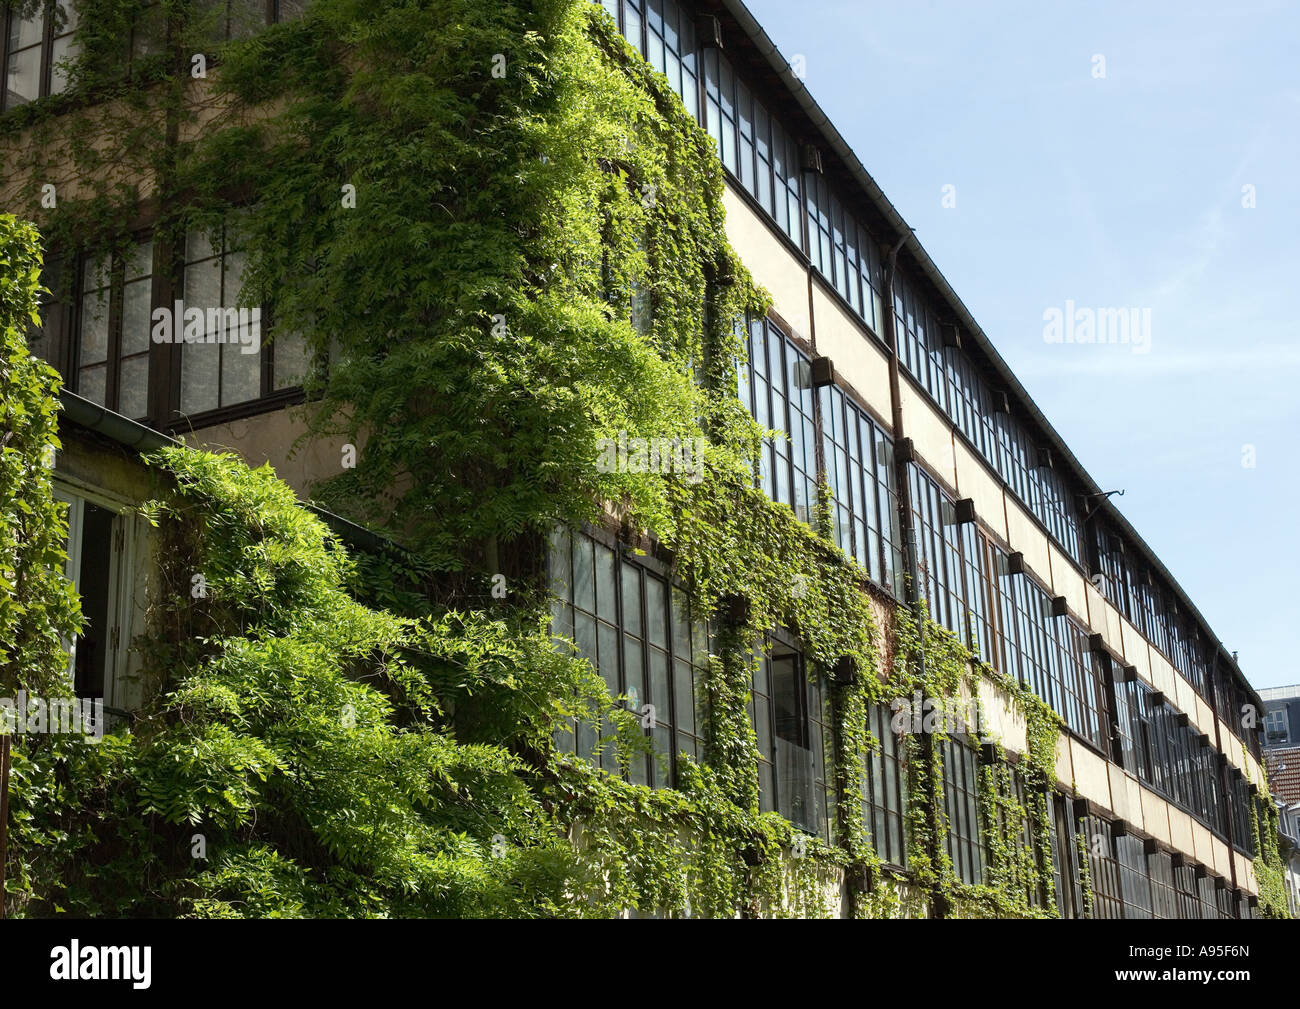 Ivy covered building - Stock Image